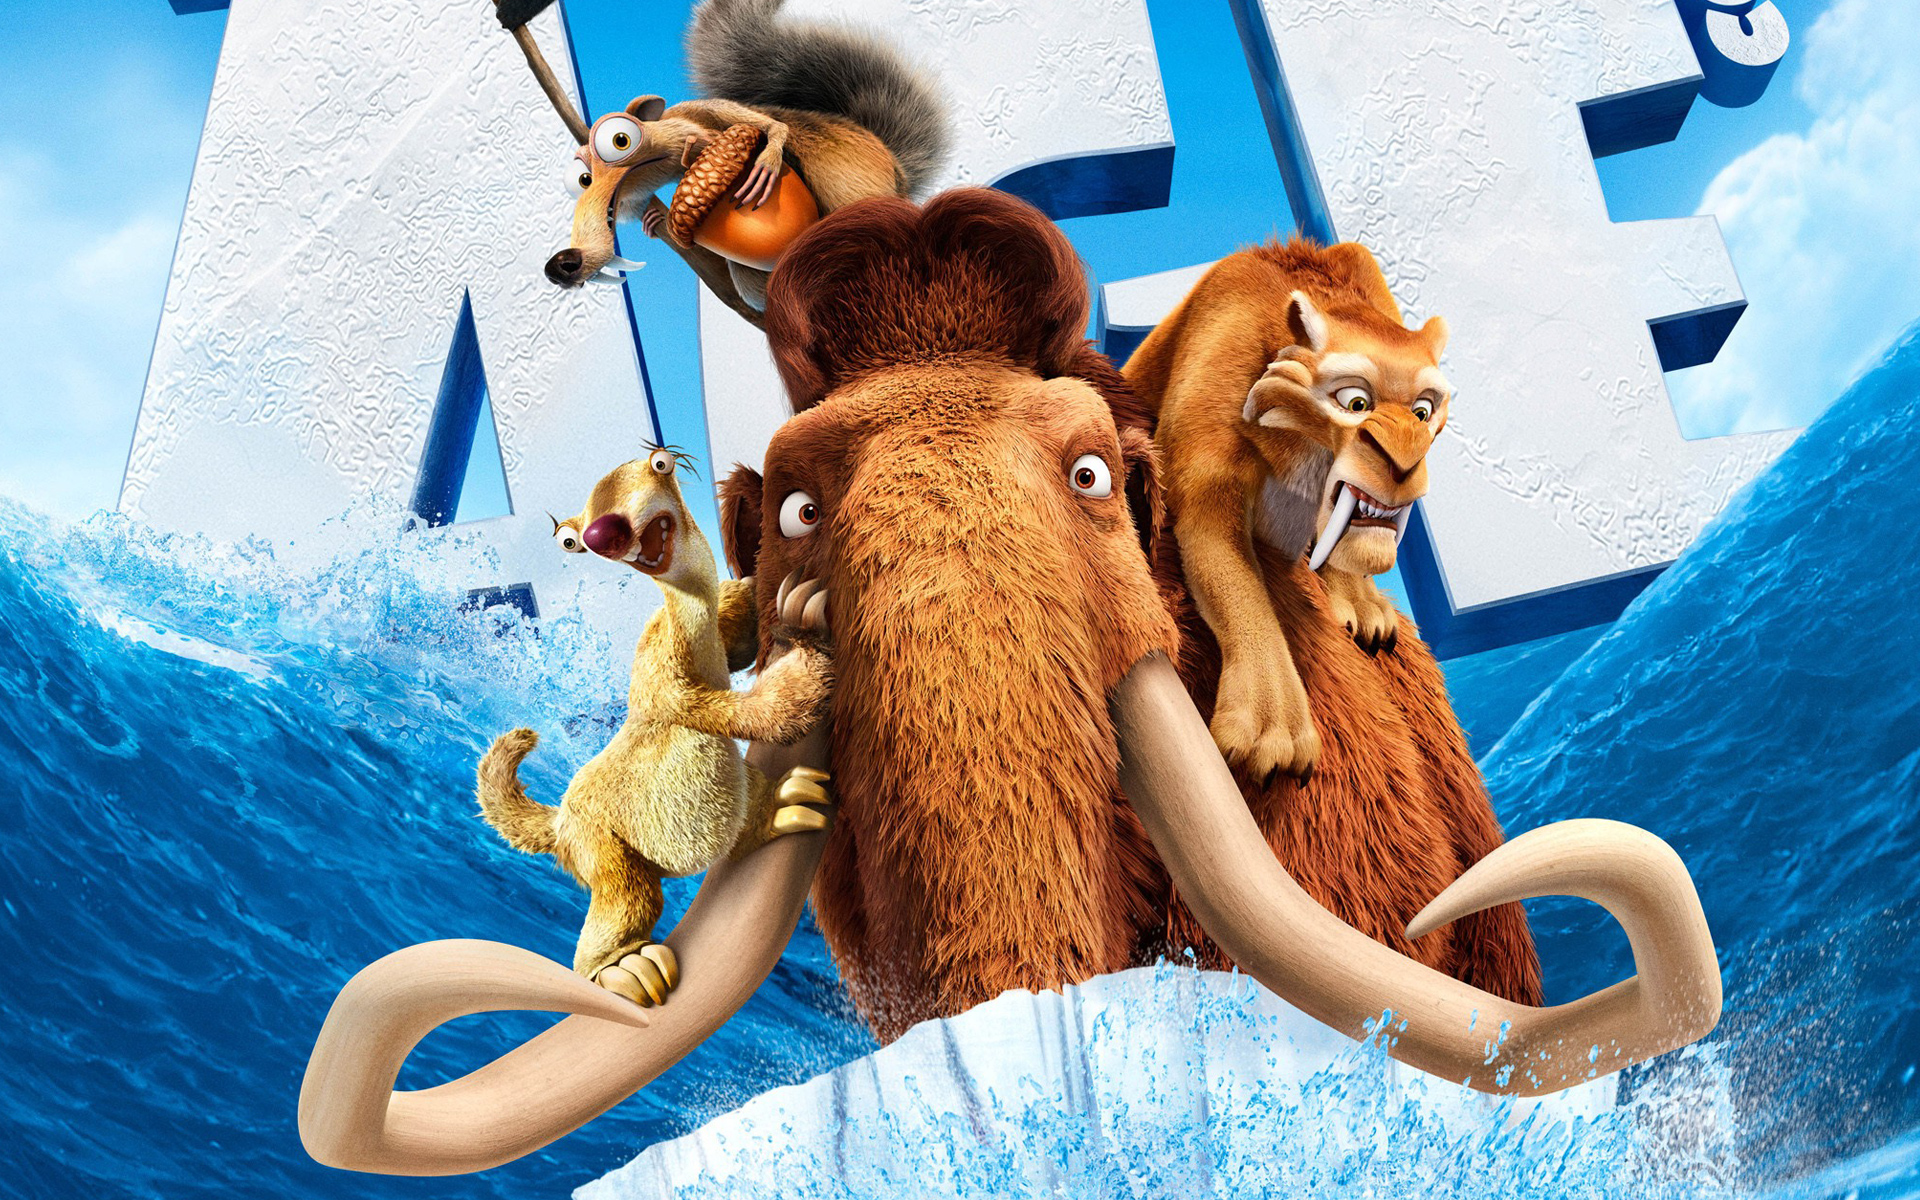 download ice age 4 hd wallpapers gallery